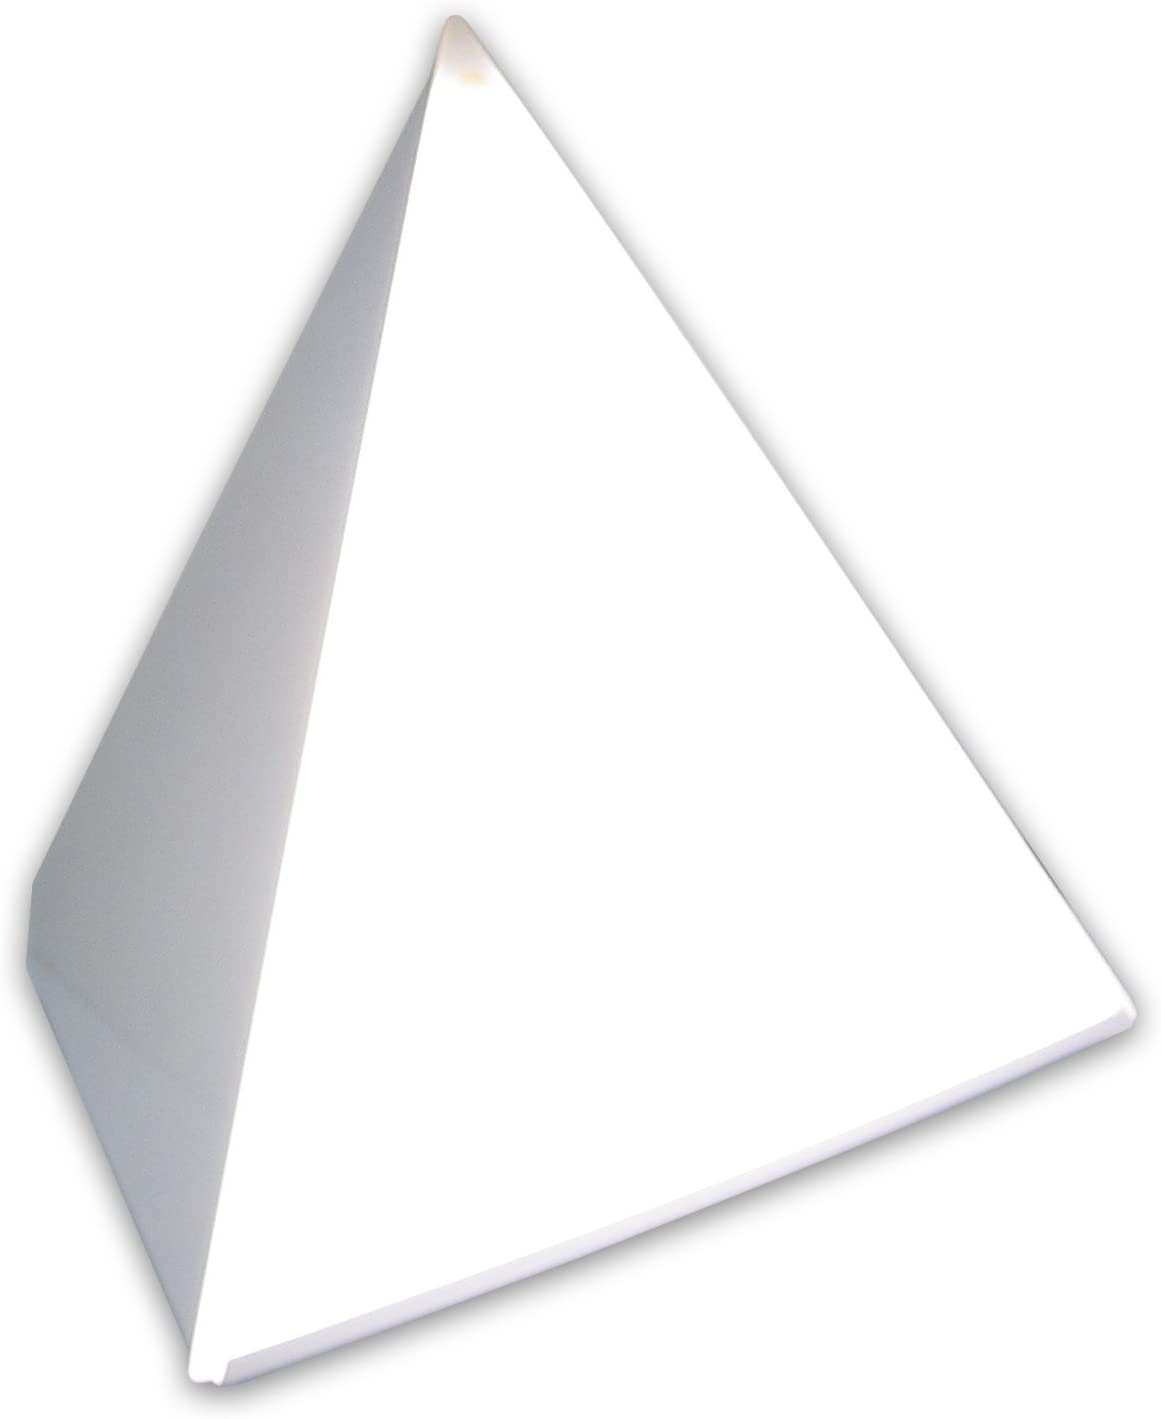 Northern Light Technologies Luxor 10,000 Lux Bright Light Therapy Pyramid Lamp, White